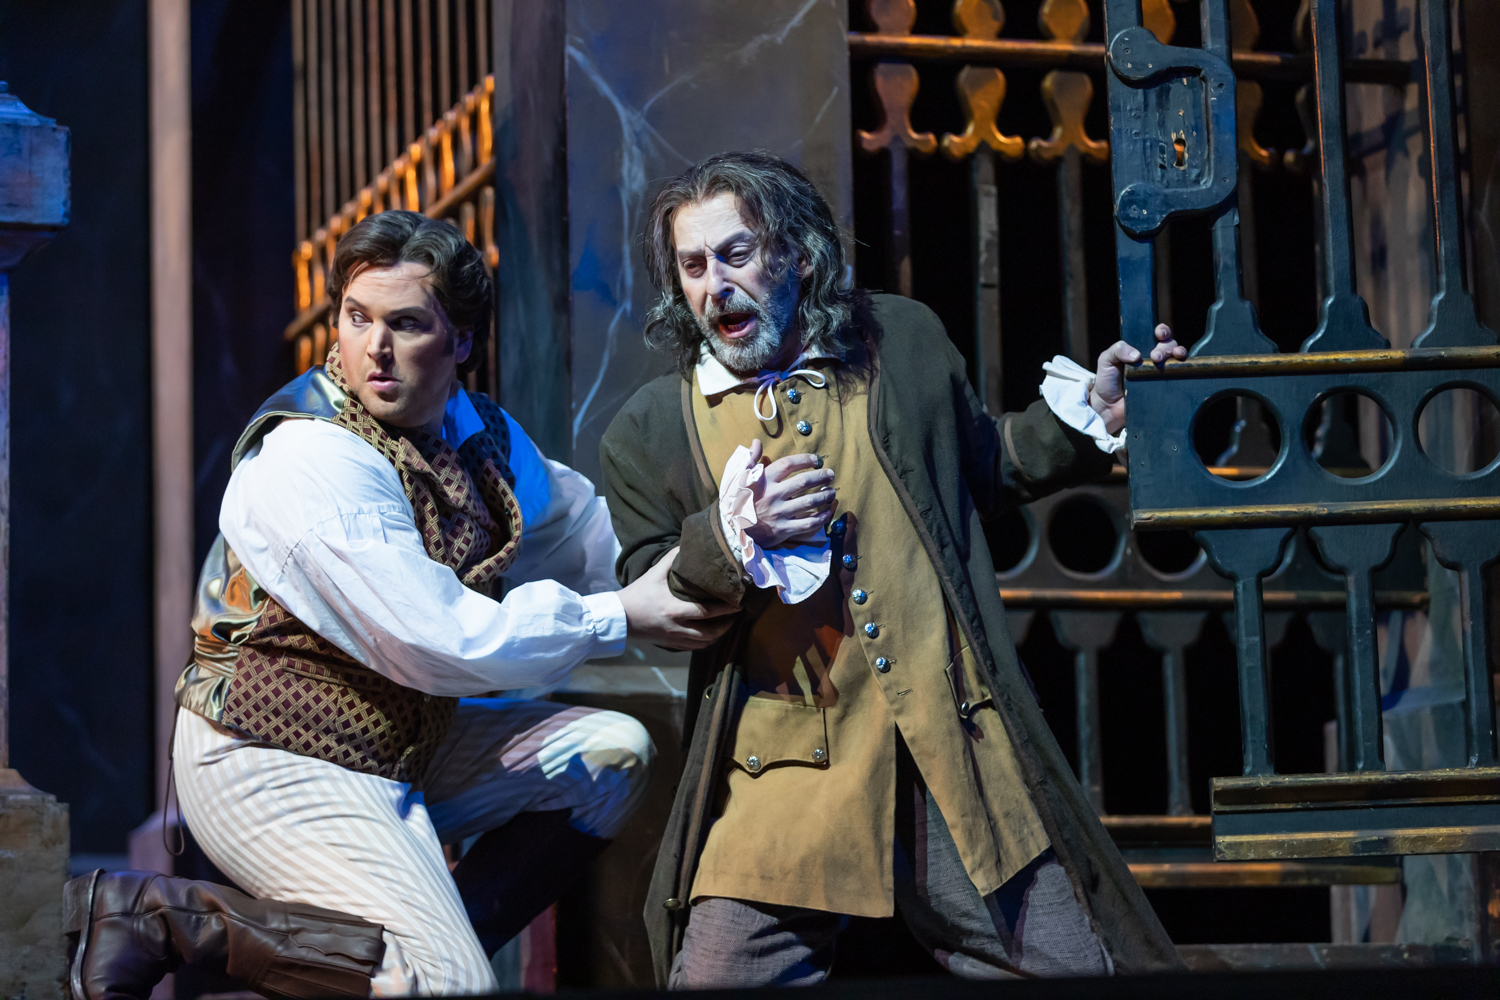 IN REVIEW: tenor SCOTT QUINN as Cavaradossi (left) and bass-baritone SABRI KARABUDAK as Angelotti (right) in North Carolina Opera's April 2019 production of Giacomo Puccini's TOSCA [Photograph by Eric Waters, © by North Carolina Opera]